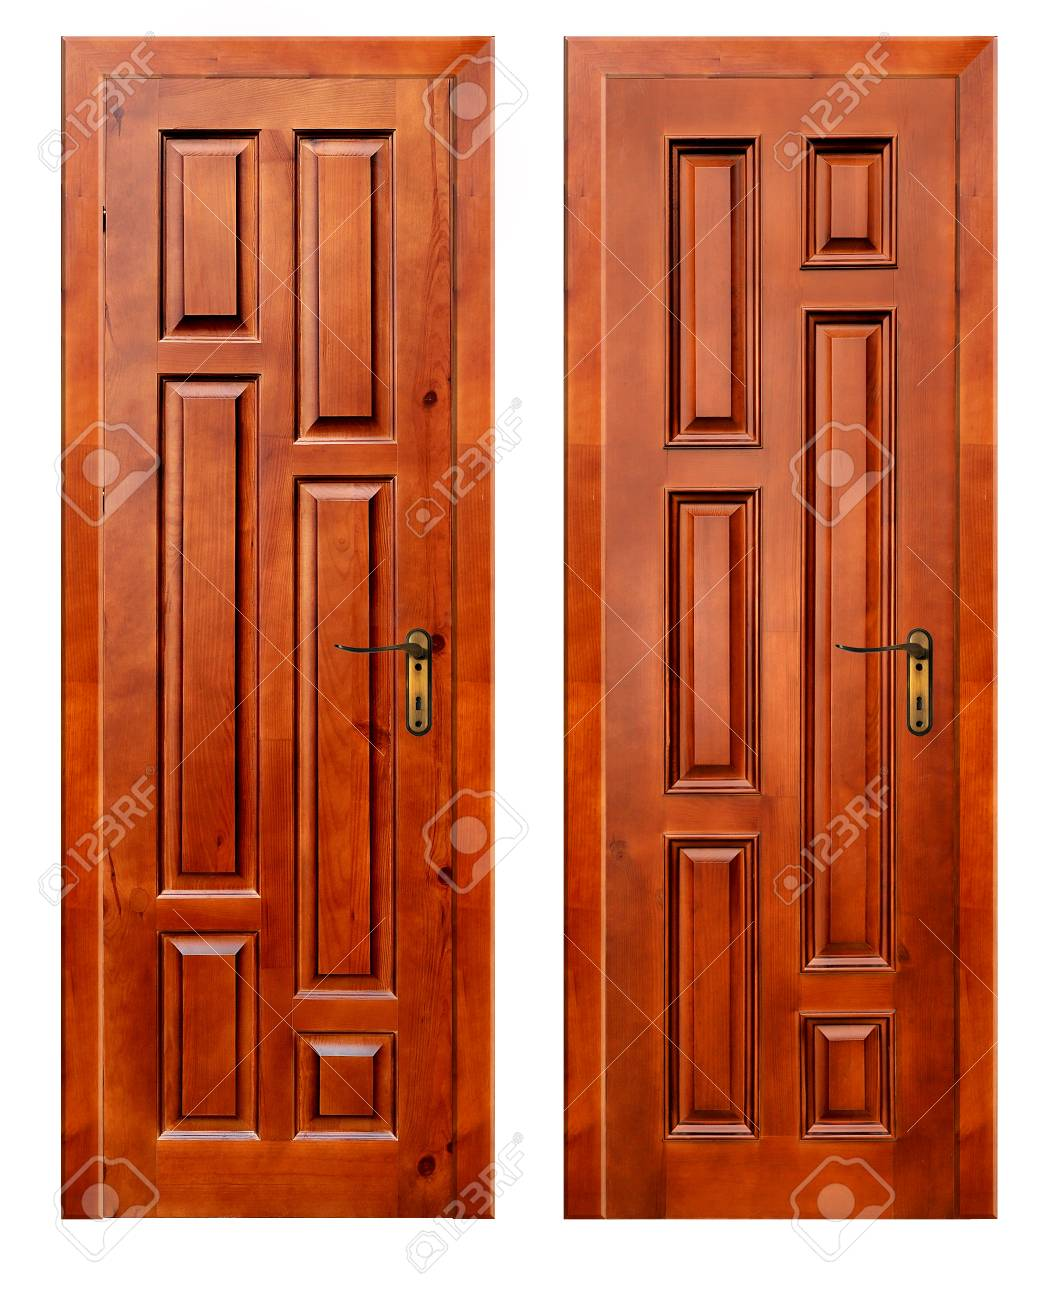 Stock Photo - two wooden doors isolated on white background with patch  sc 1 st  123RF.com & Two Wooden Doors Isolated On White Background With Patch Stock Photo ...